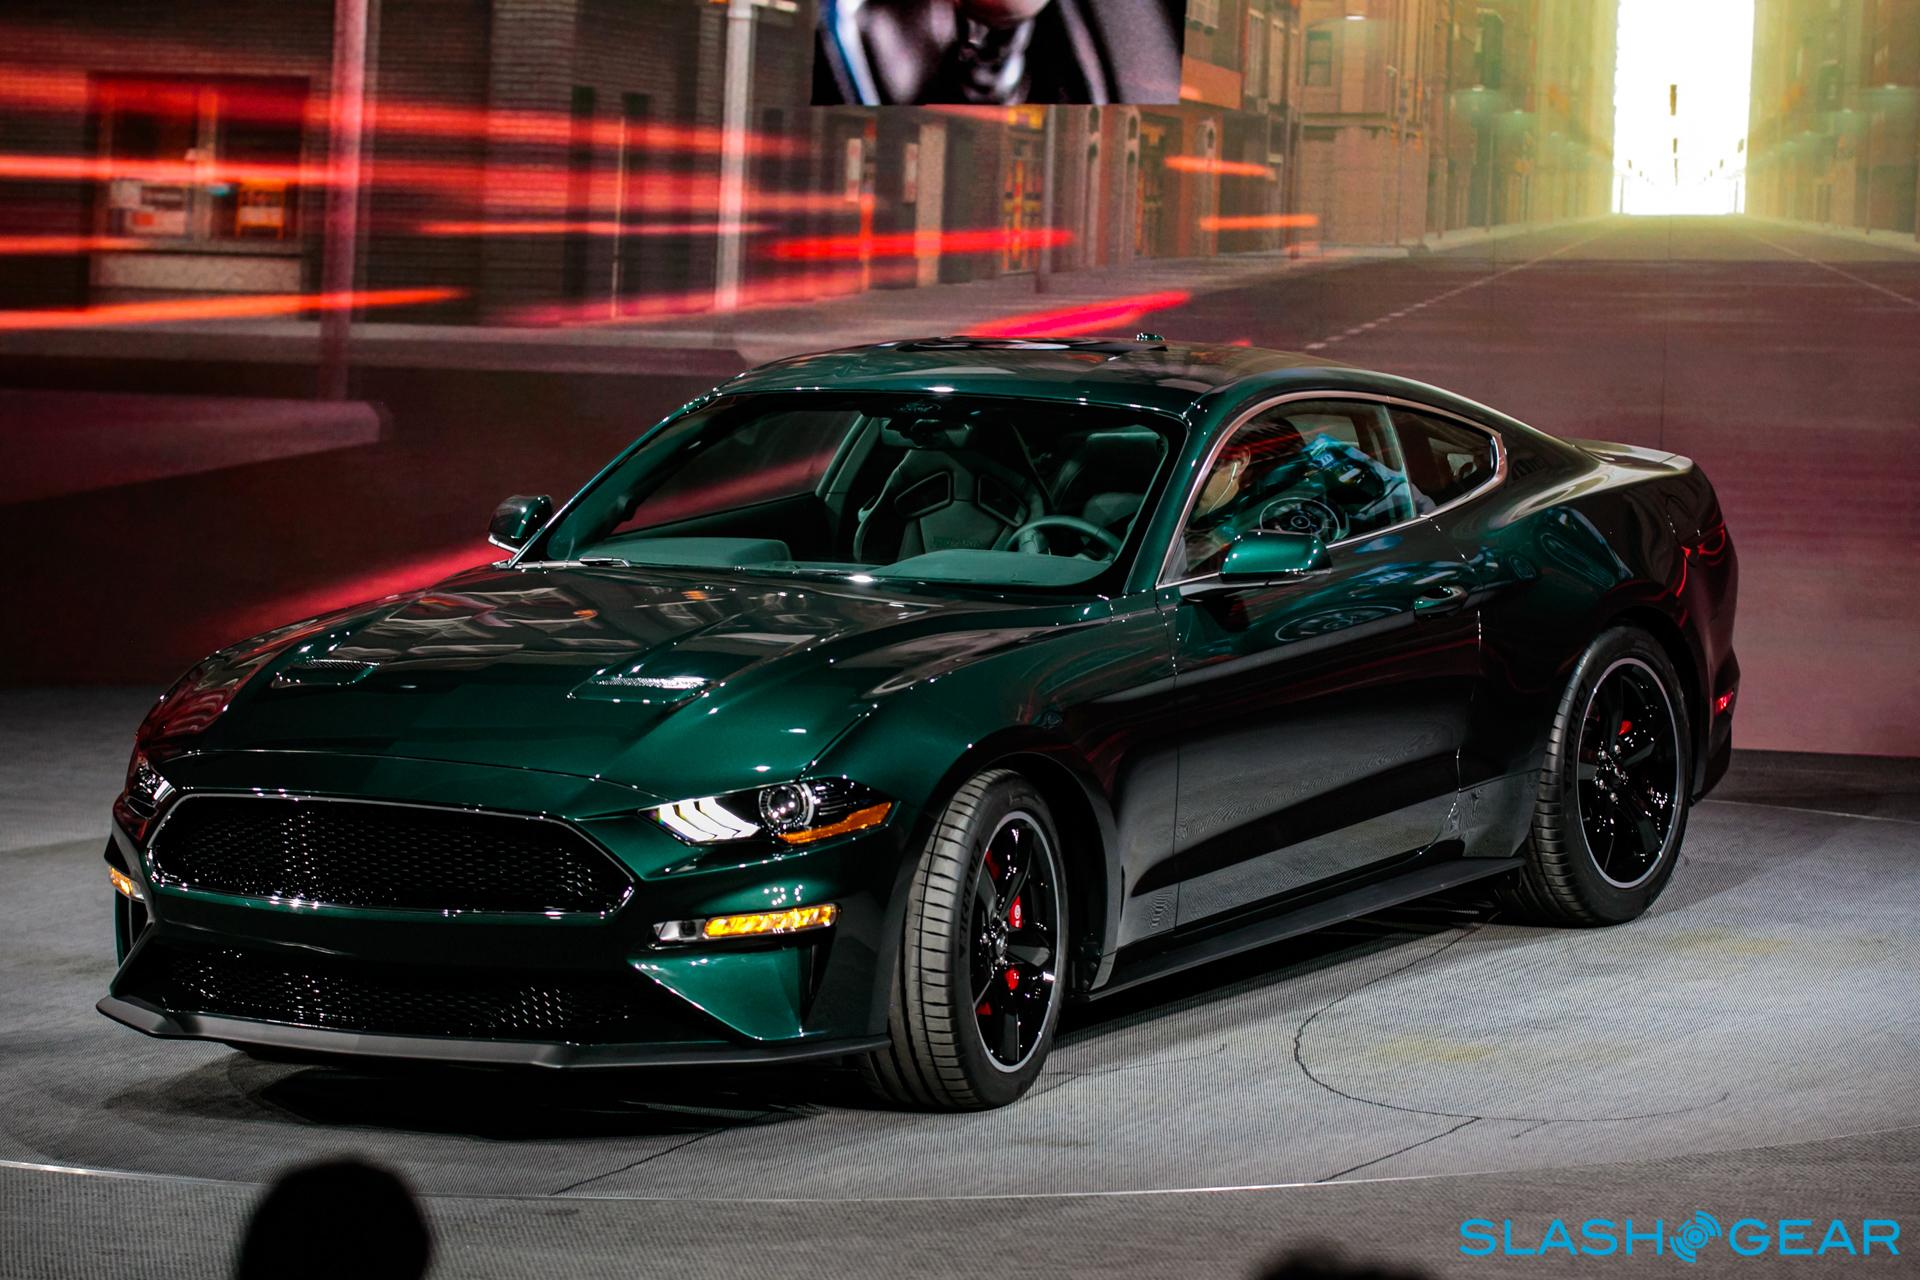 2019 ford mustang bullitt price and power confirmed slashgear